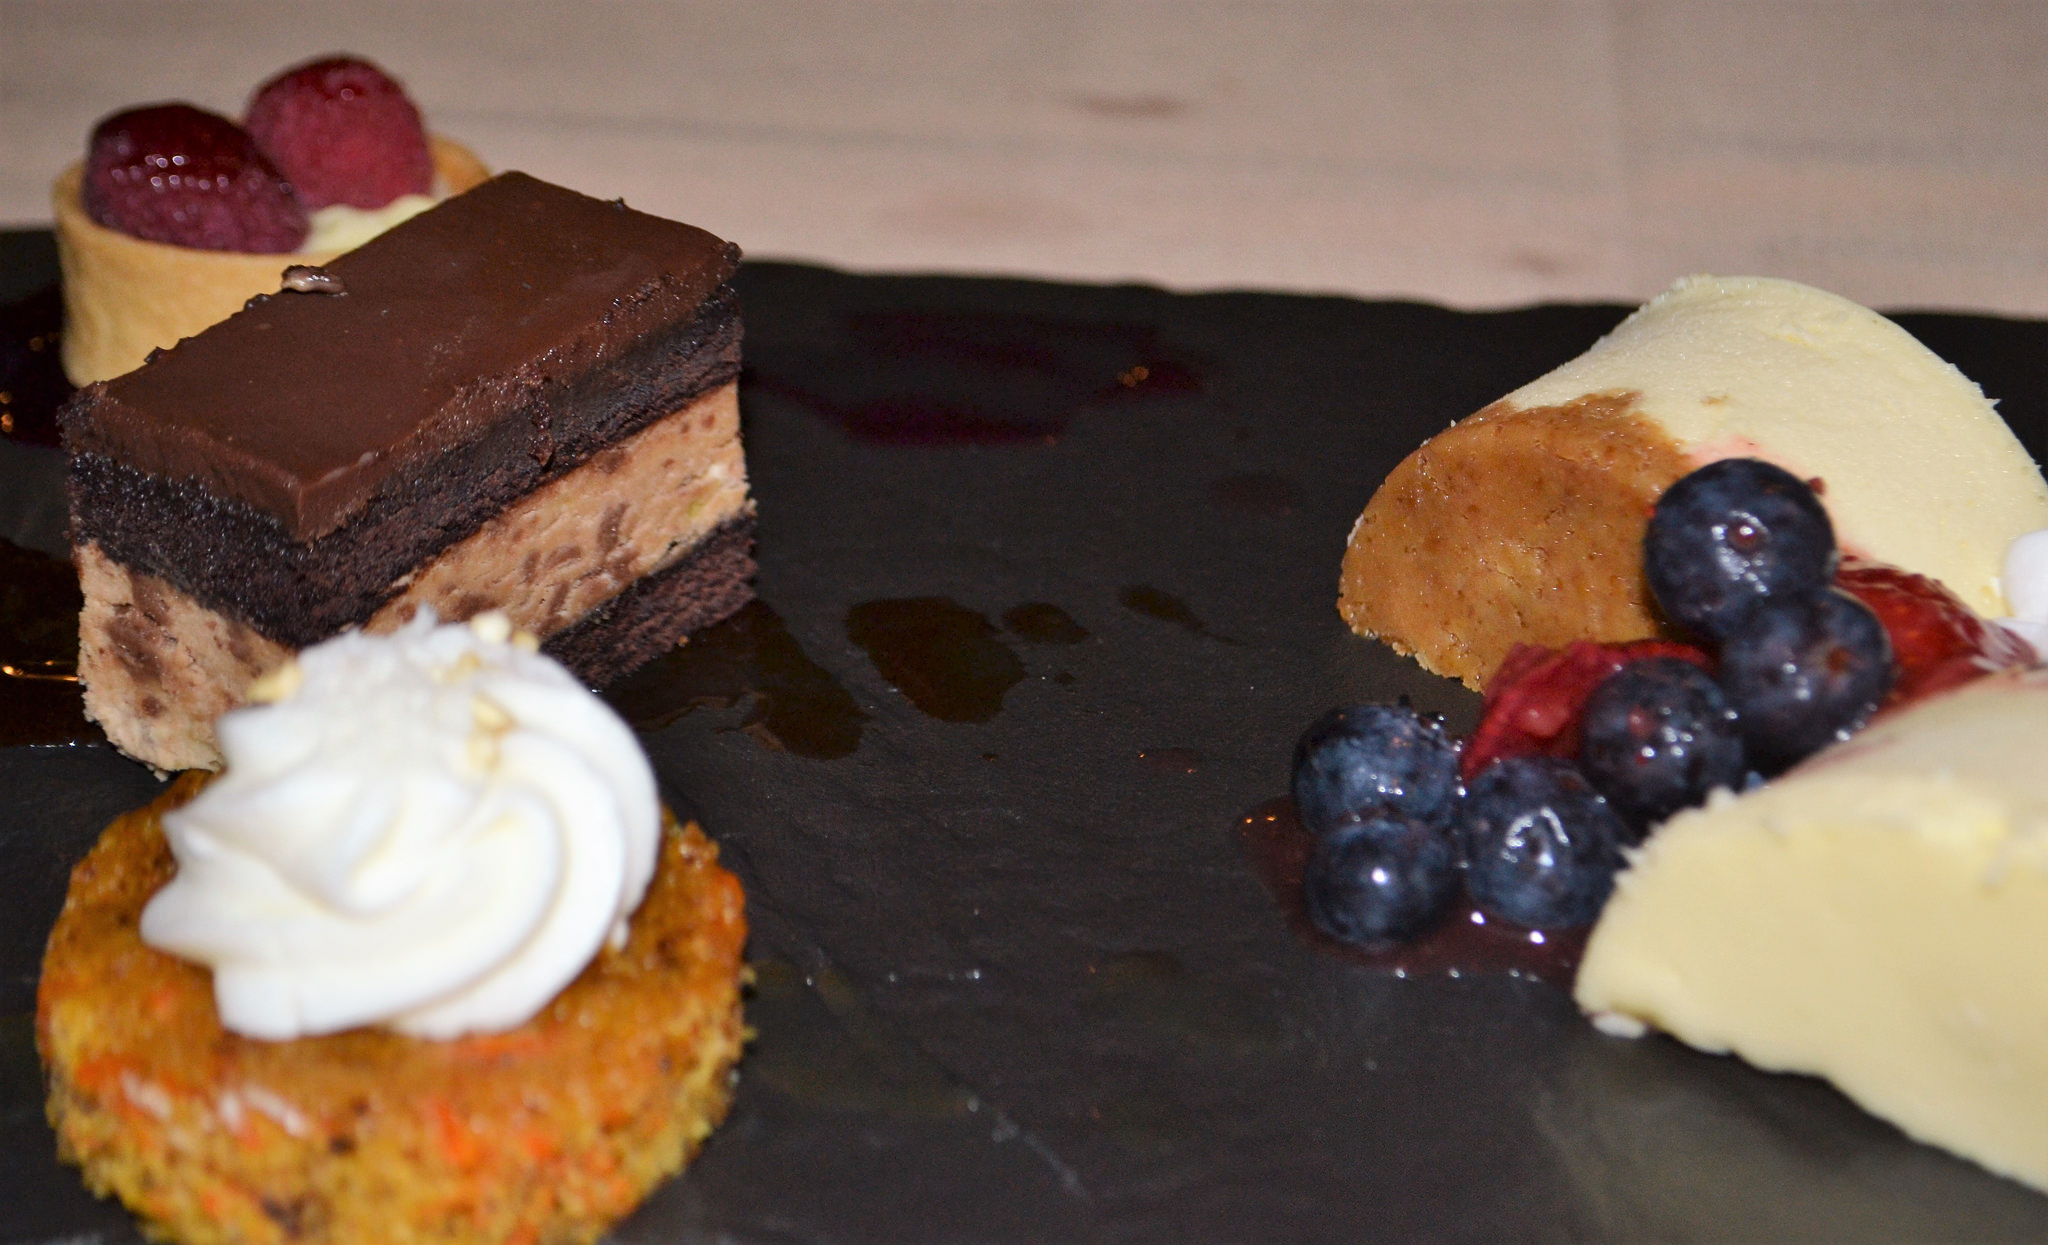 indulgent dessert, pastries, award winning, packards steakhouse